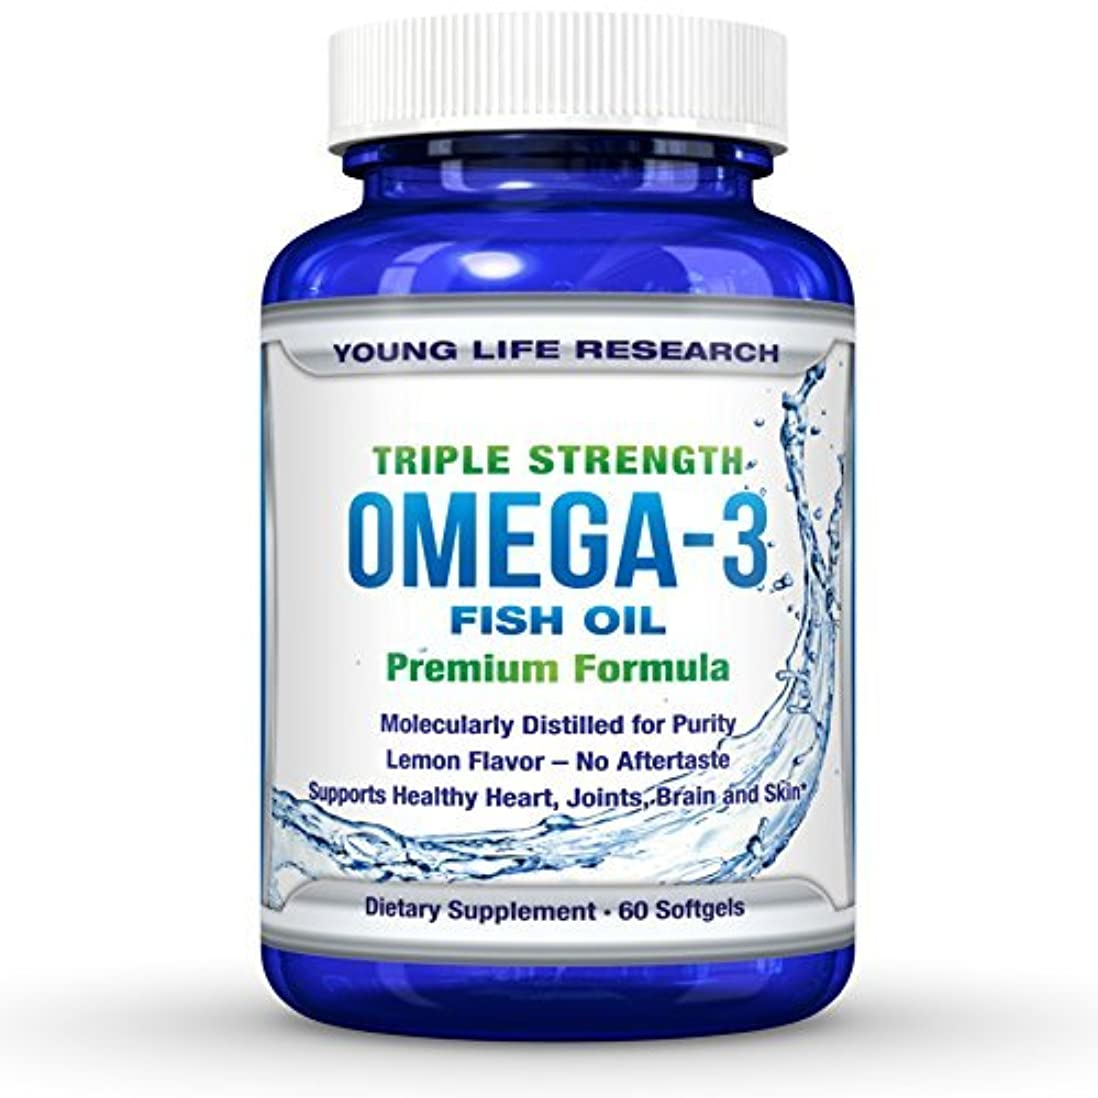 FISH OIL OMEGA 3 - Triple Strength Ultra-Purified Professional Grade - By Young Life Research by Young Life Research...